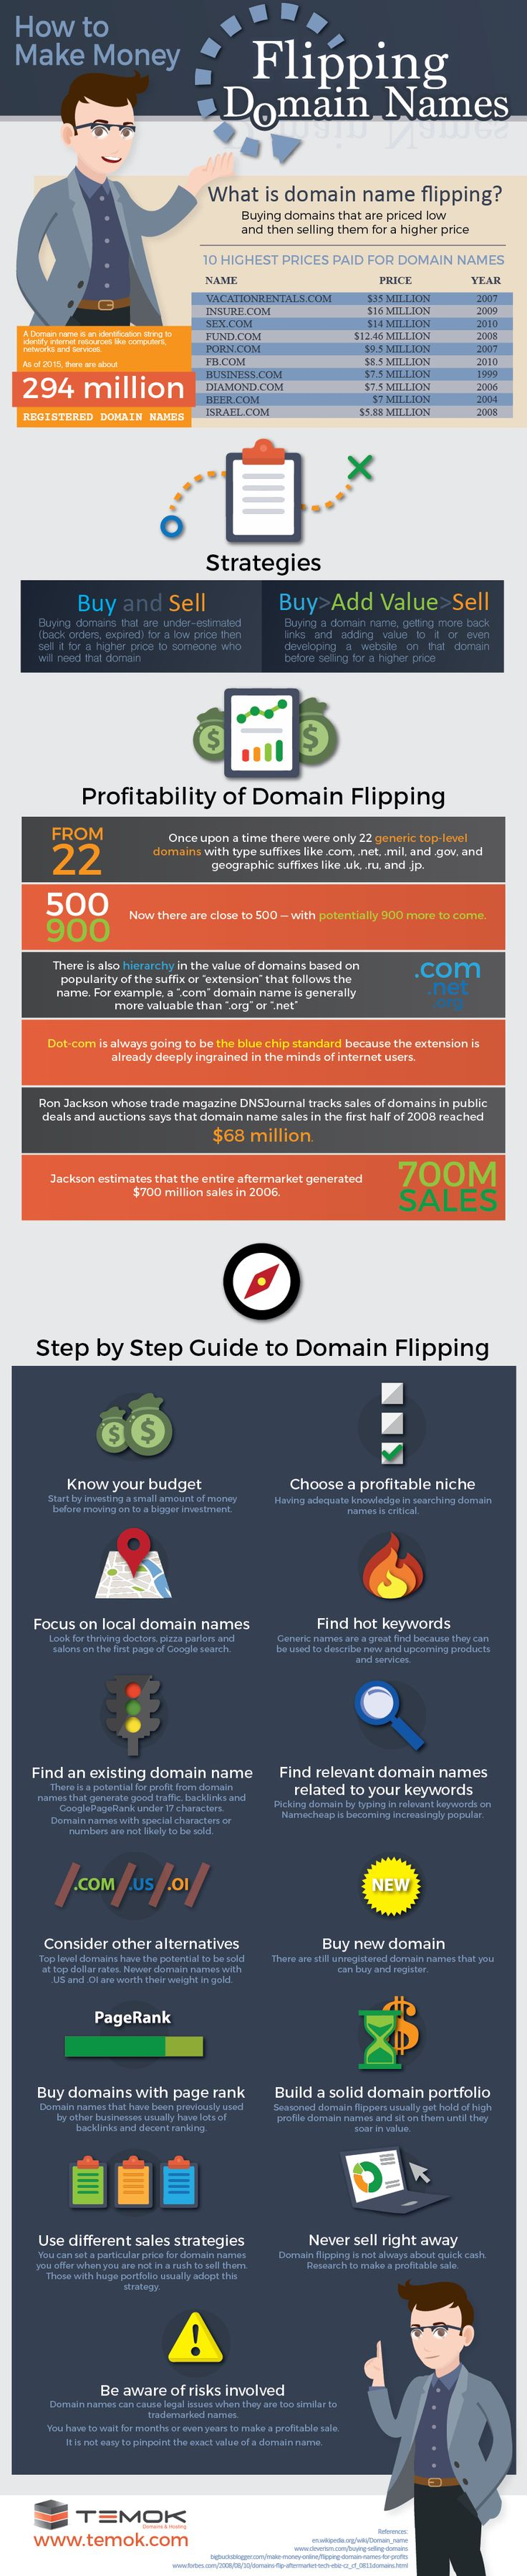 How to Make Money Flipping Domain Names https://www.temok.com/blog/how-to-make-money-flipping-domain-names/